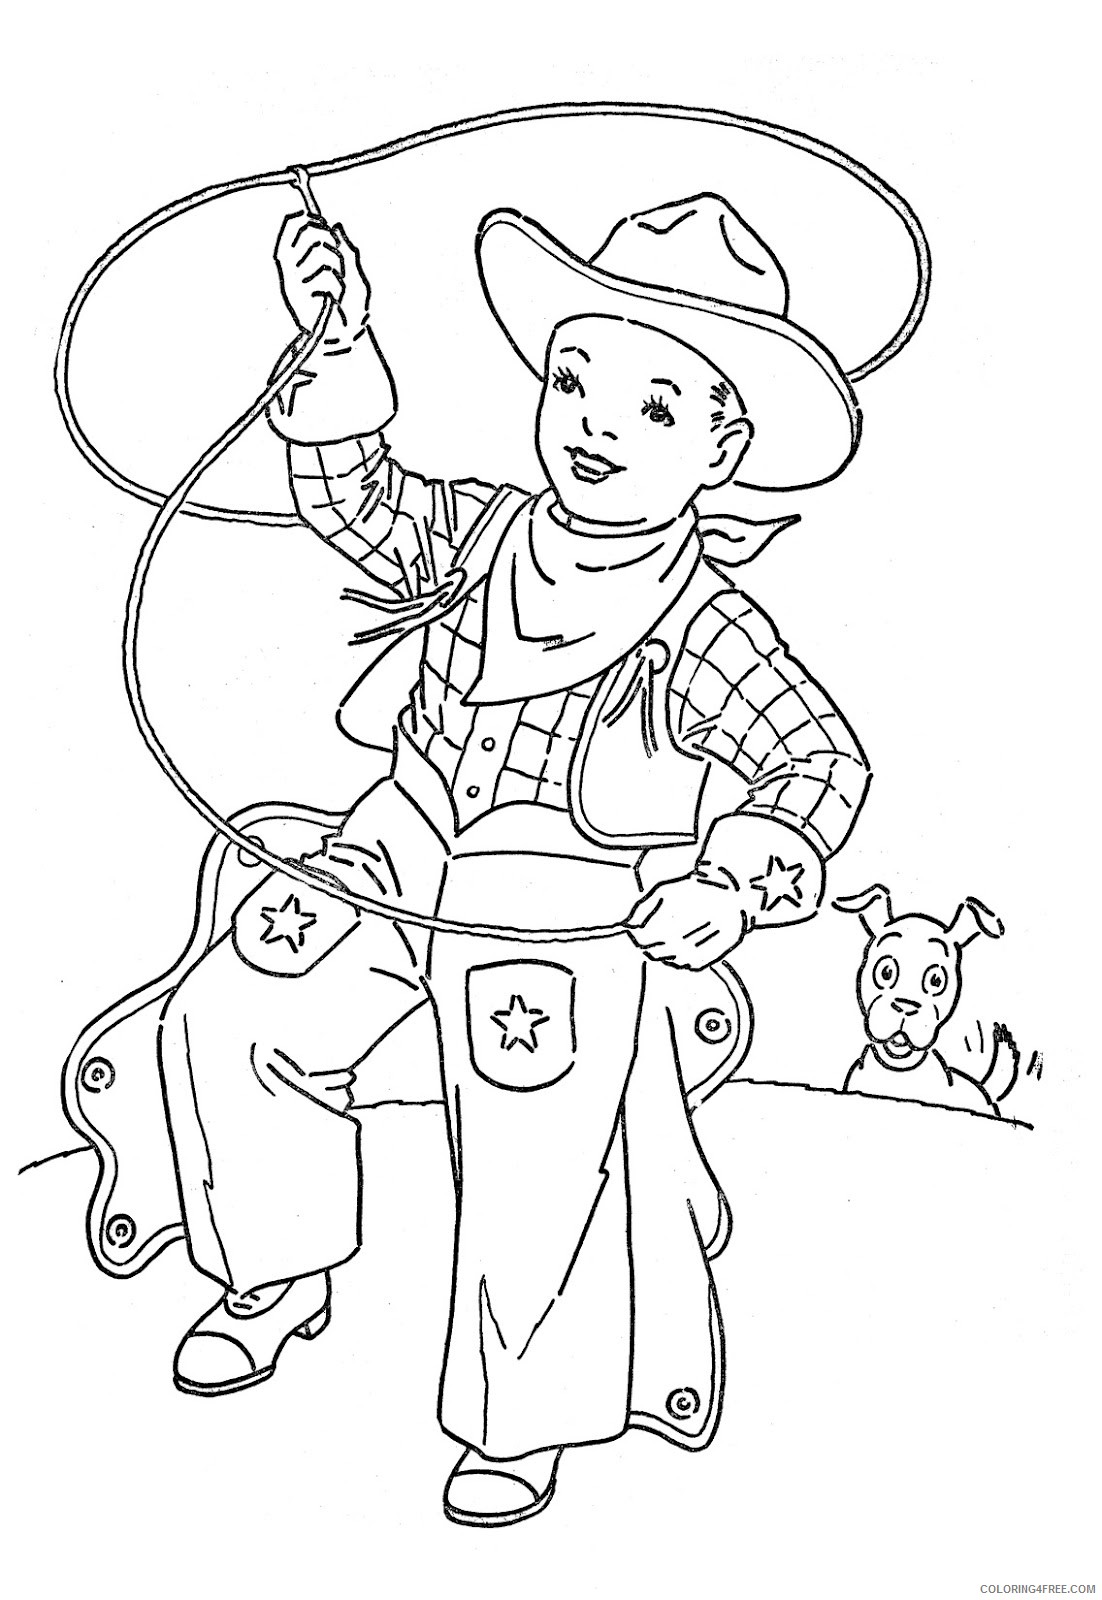 cowboy kids coloring pages Coloring4free